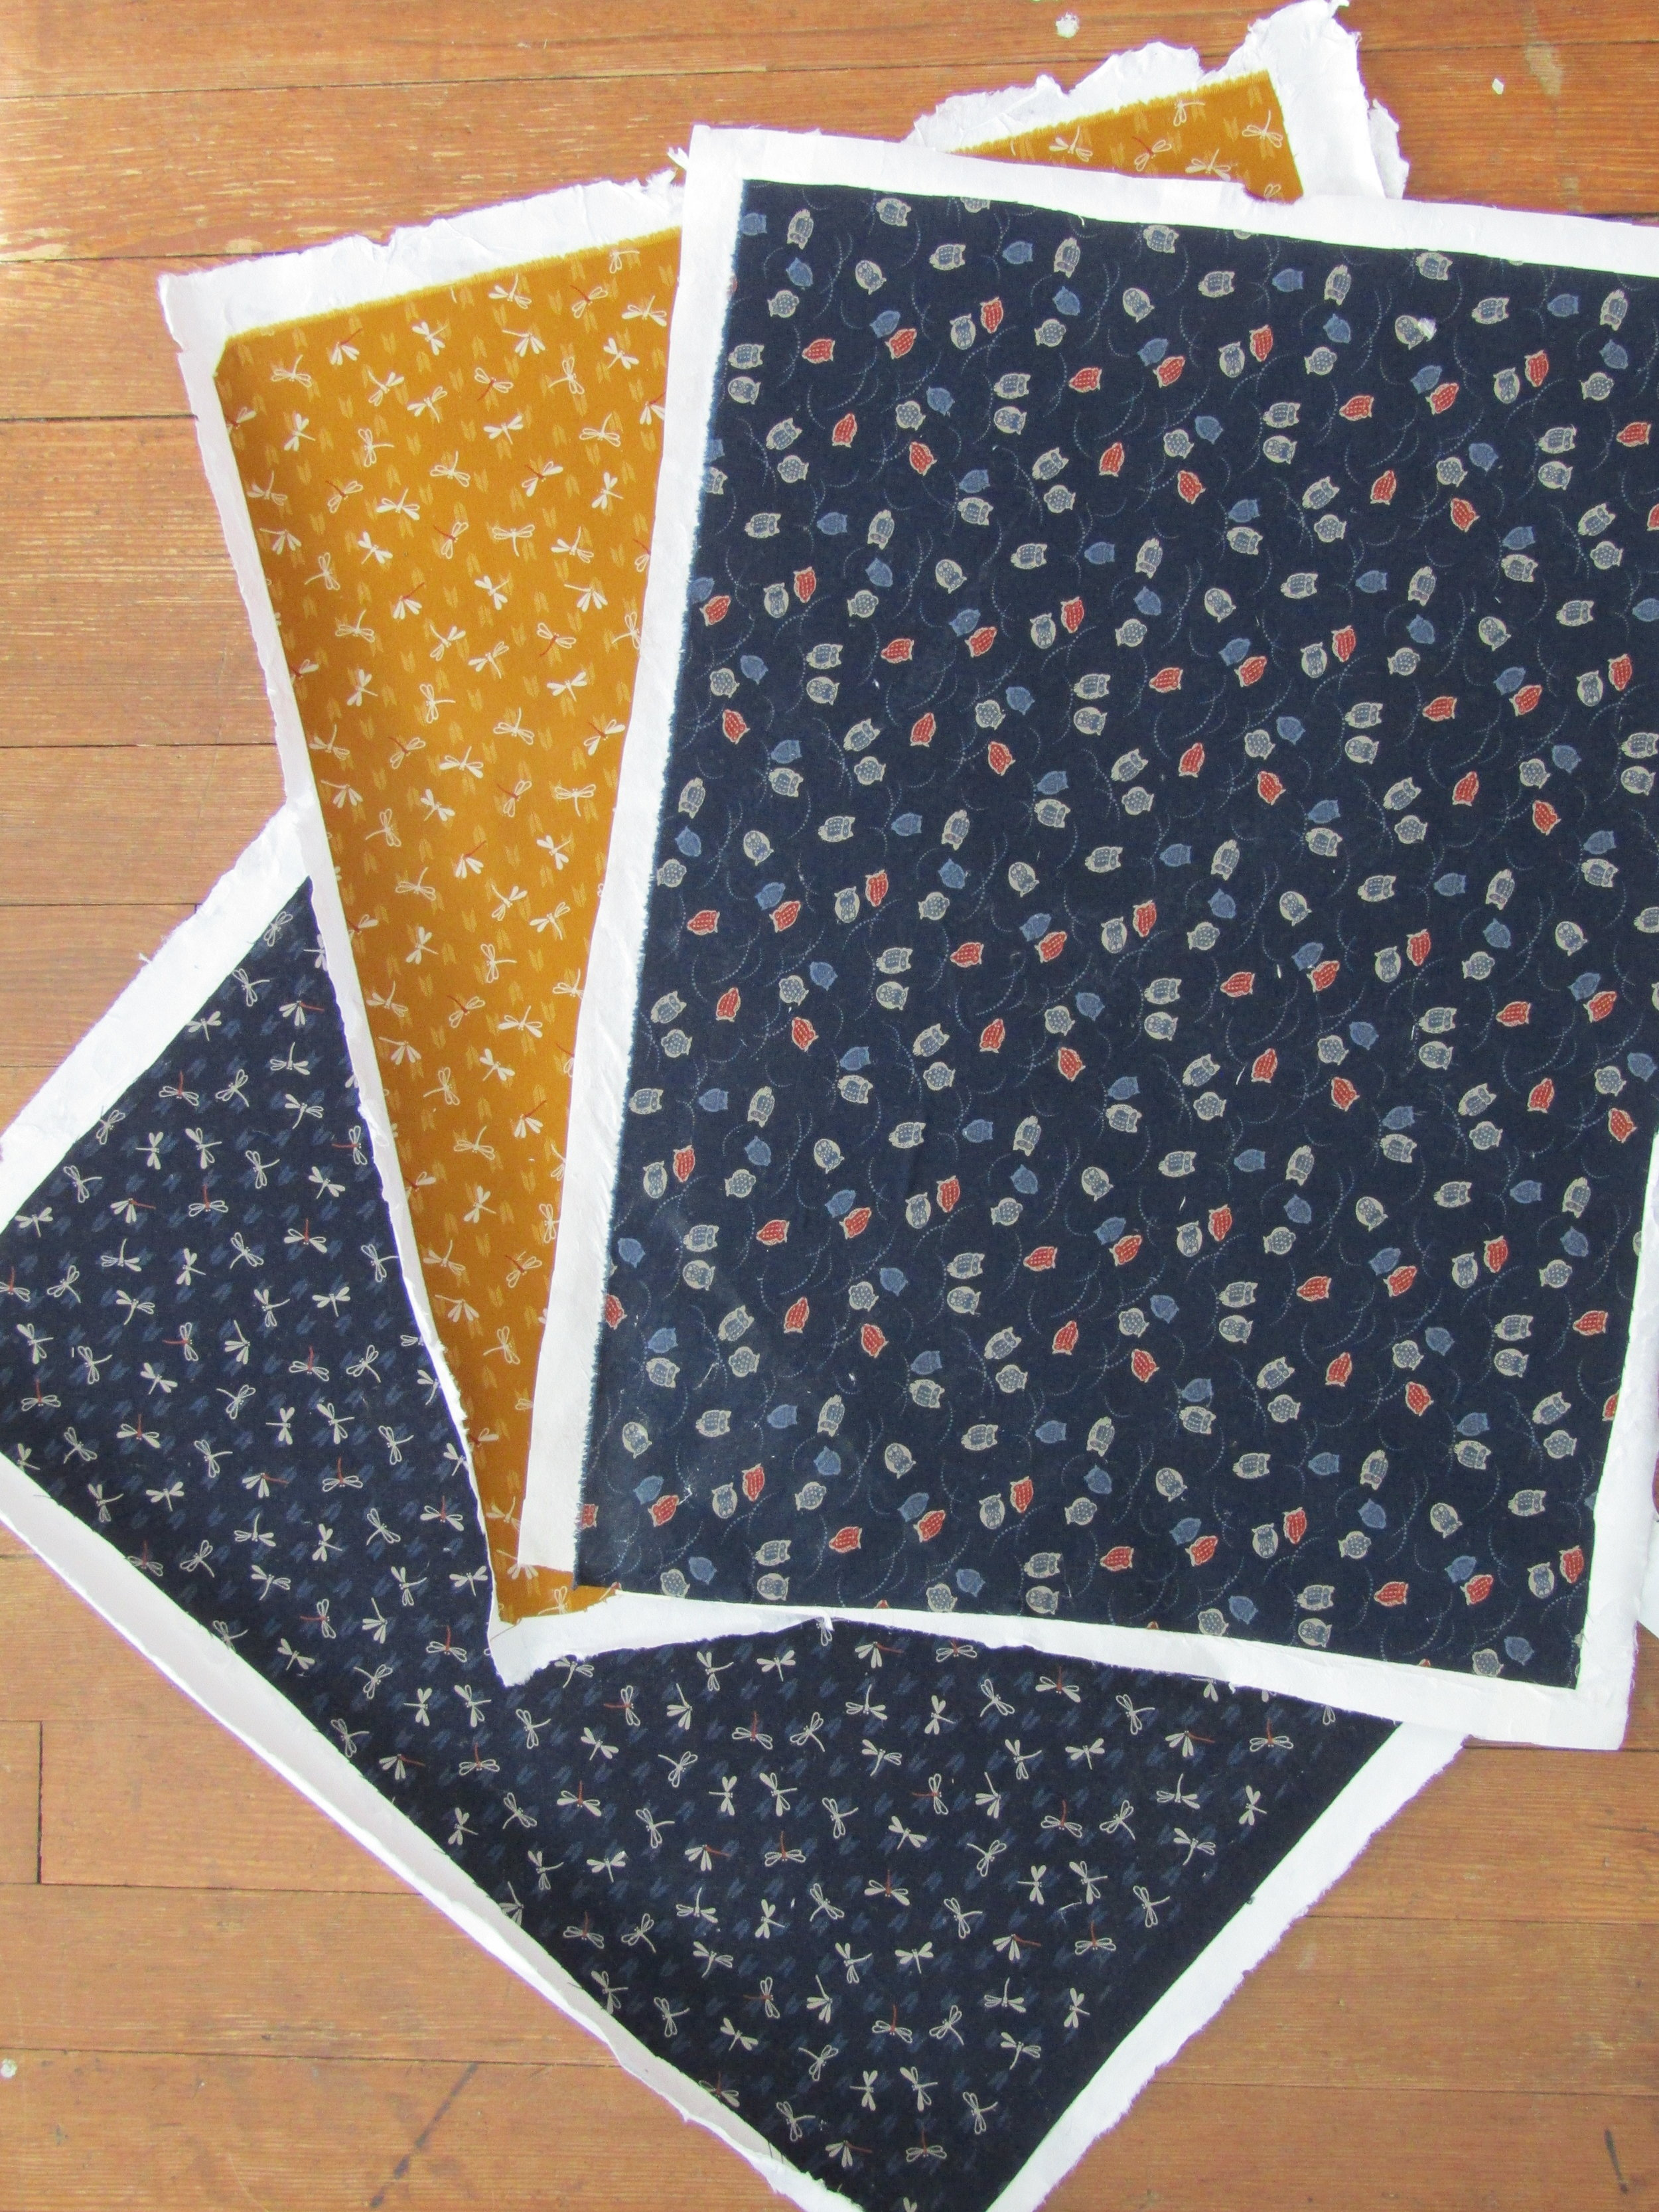 Fabric backed with kozo paper; ready to use!